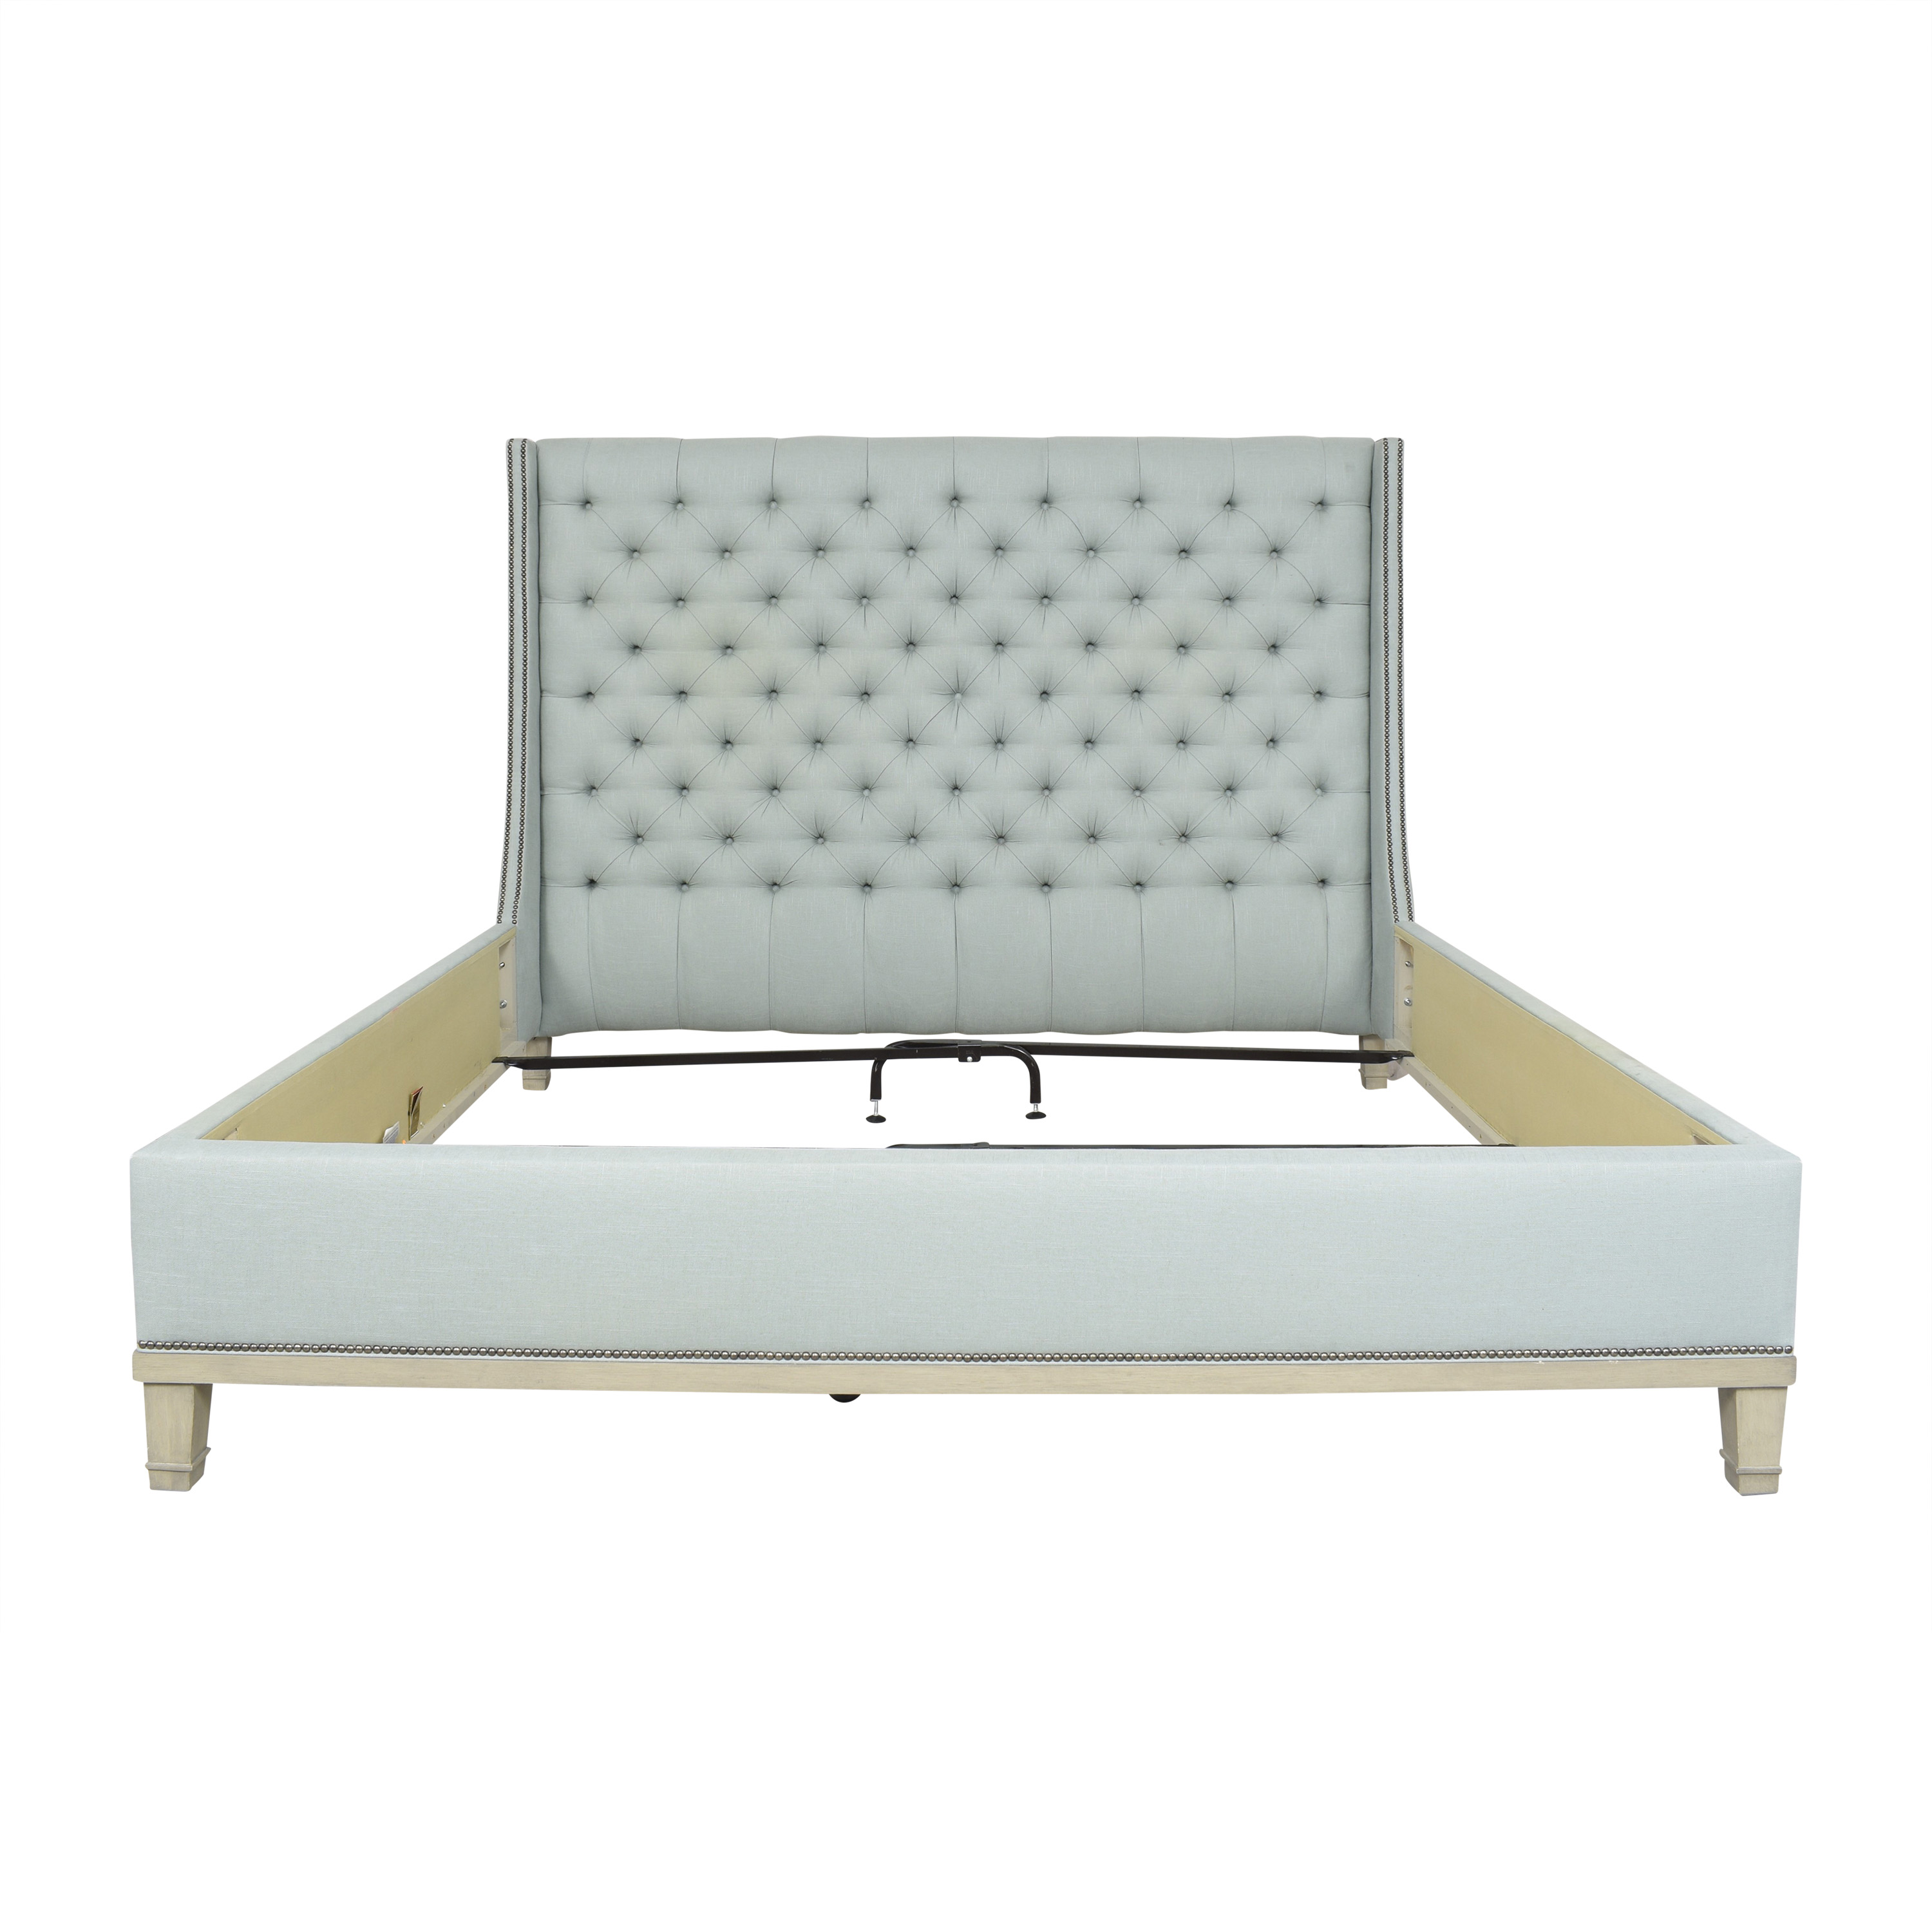 Vanguard Furniture Vanguard Furniture Michael Weiss Cleo Tufted California King Bed  pa